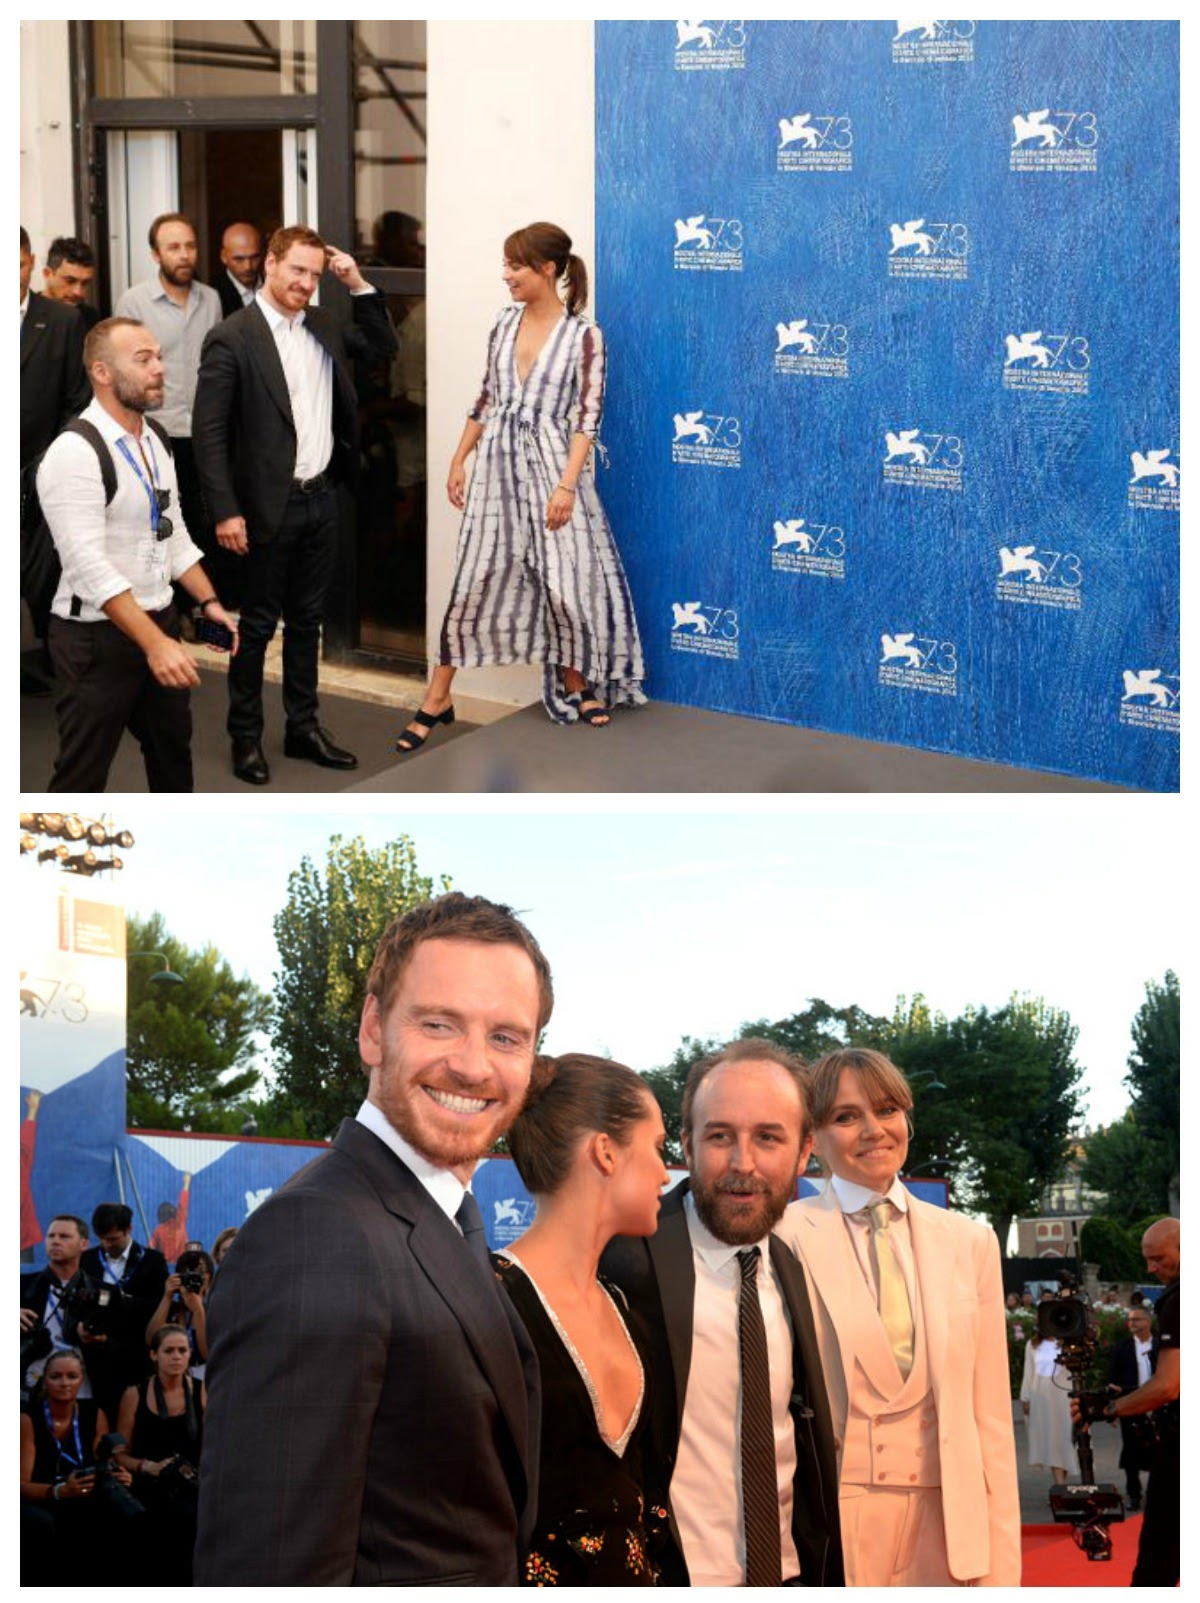 festival-venezia-73-red-carpet-2016